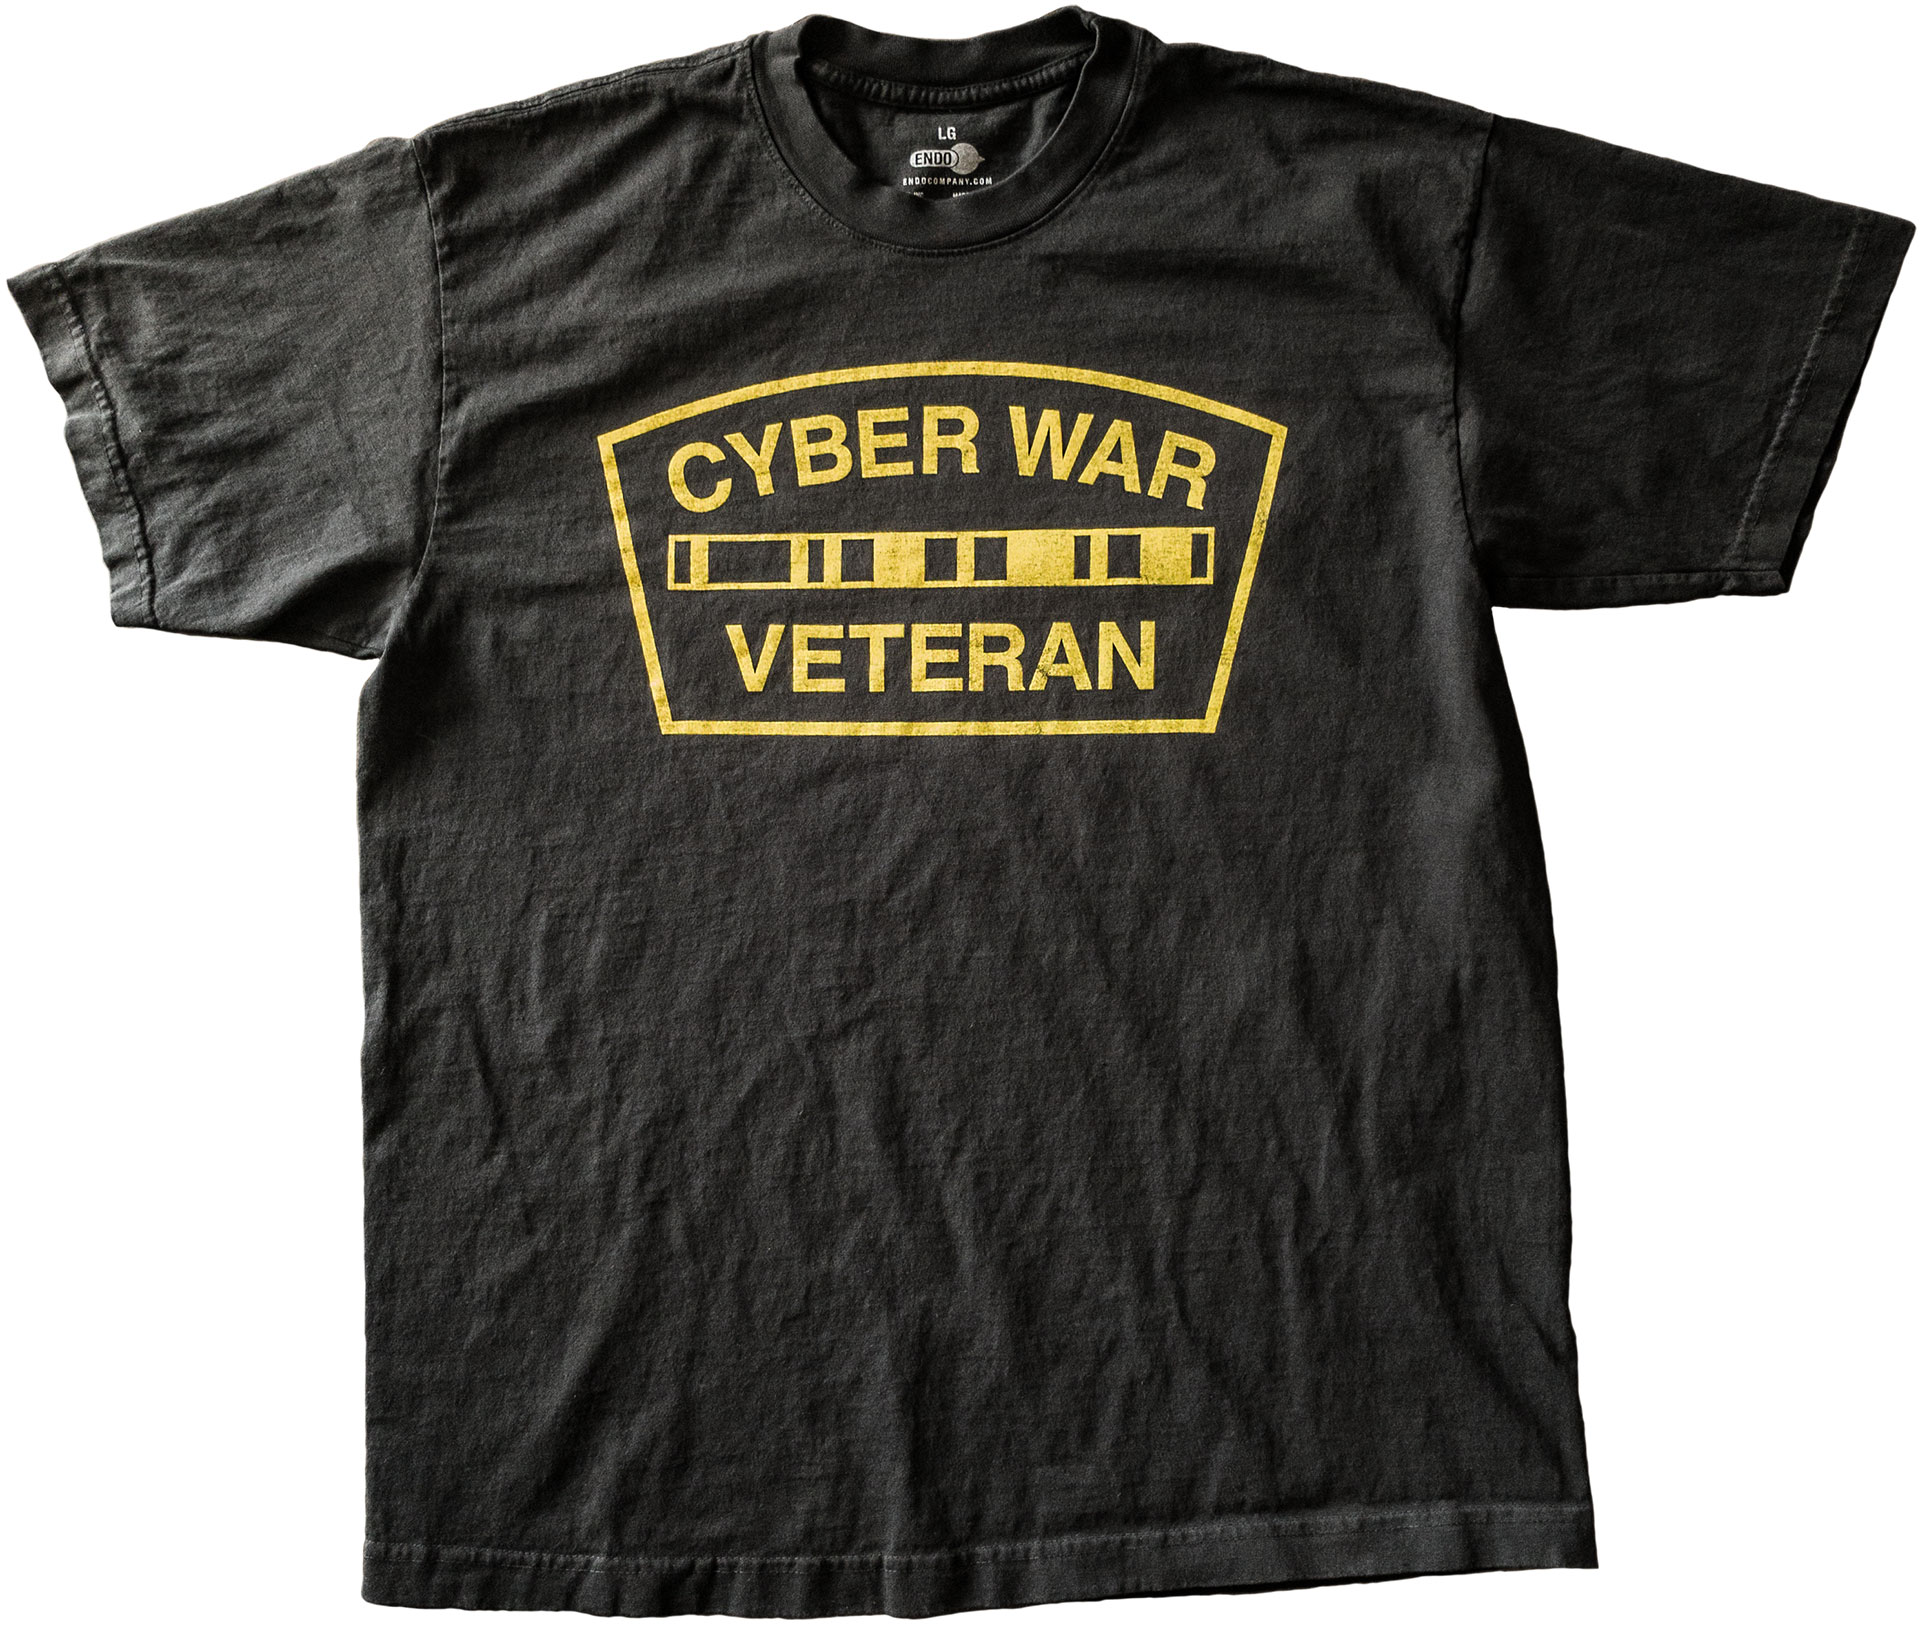 Cyber War Veteran T-Shirt